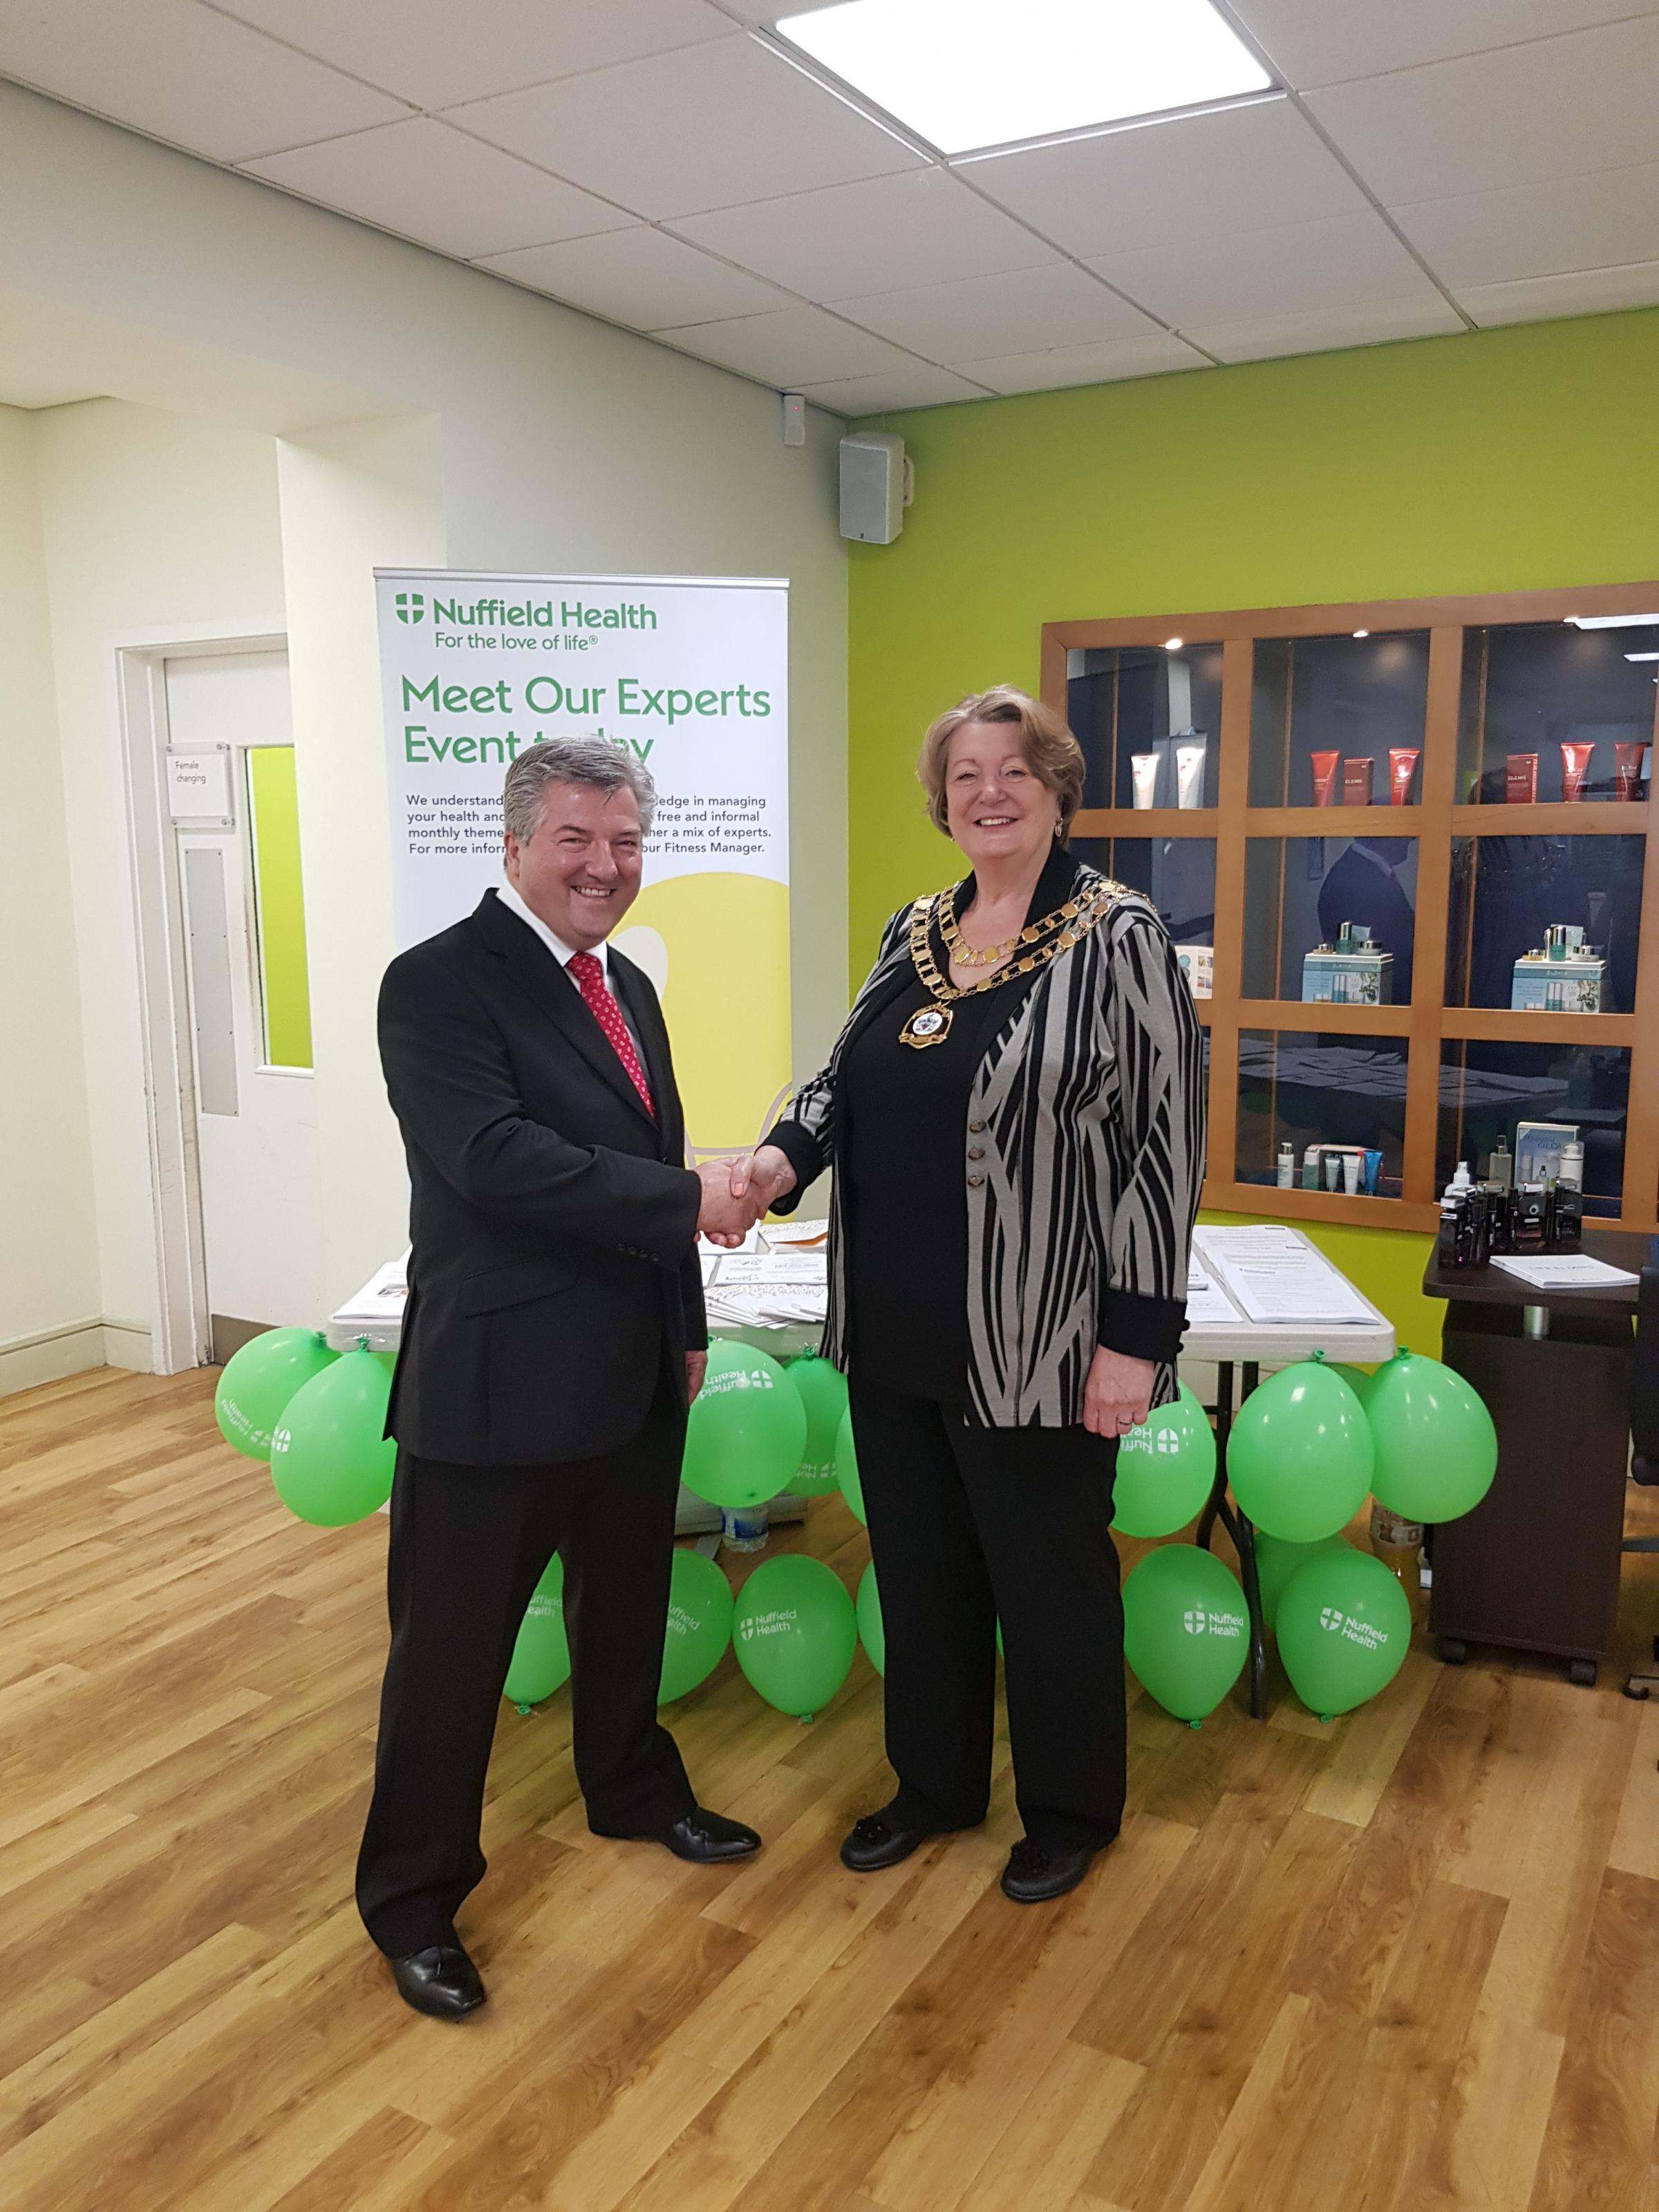 Martin Skinner of Nuffield Health with mayor Maureen Penny.